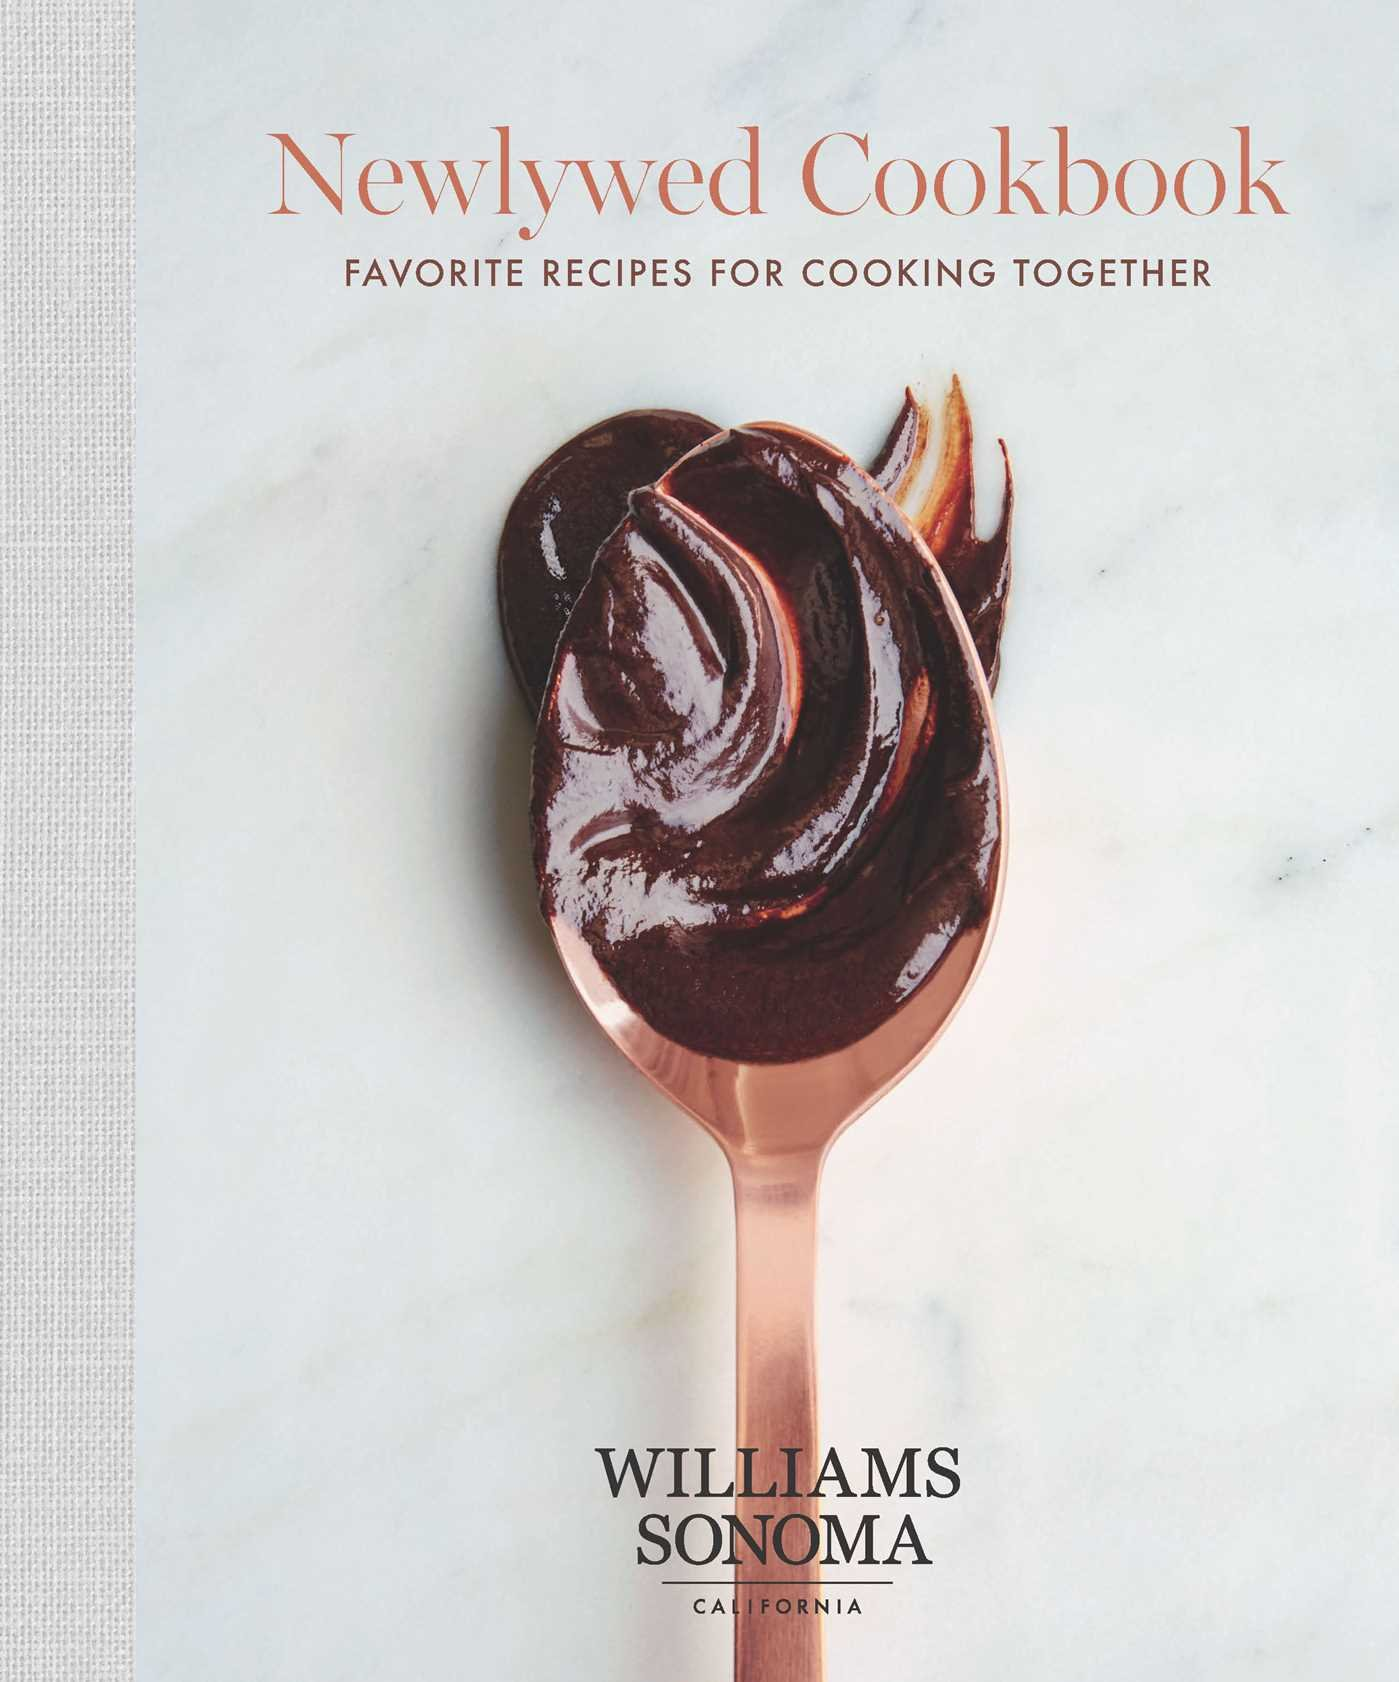 The Newlywed Cookbook: Favorite Recipes for Cooking Together (Williams Sonoma) PDF